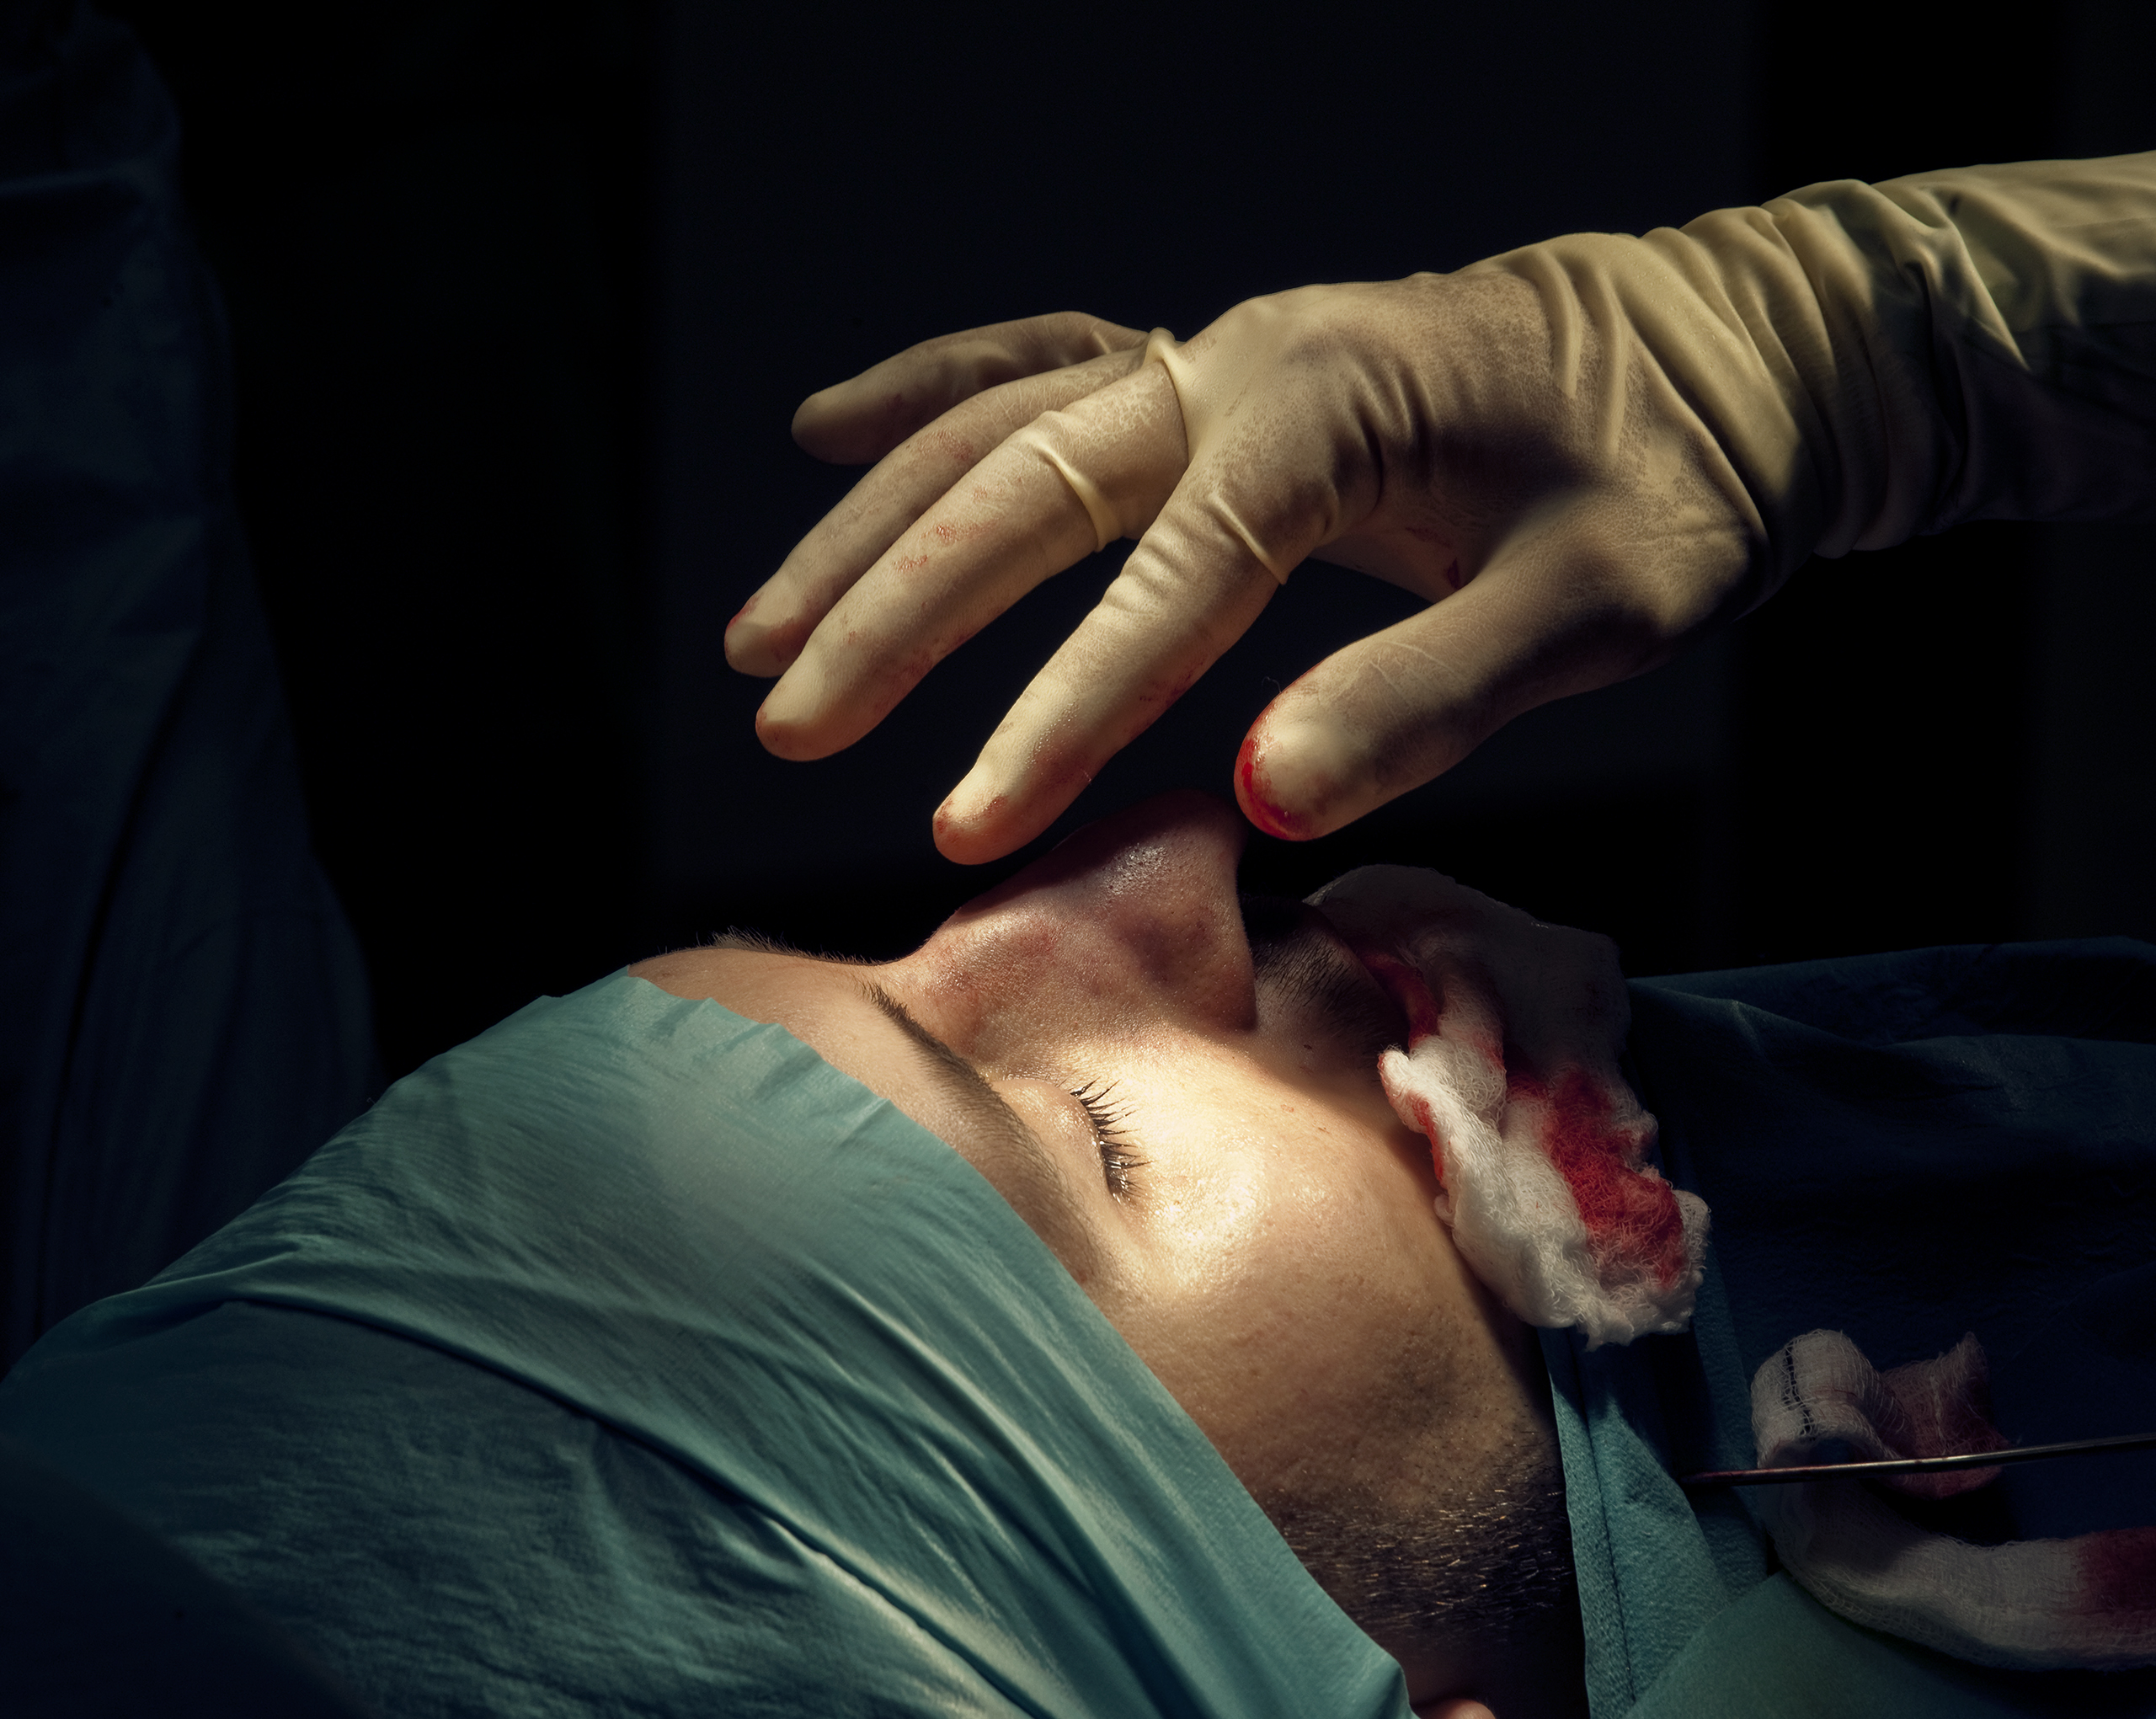 A 25-year-old British man undergoes rhinoplasty surgery to reduce the size of his nose in London.                                2011